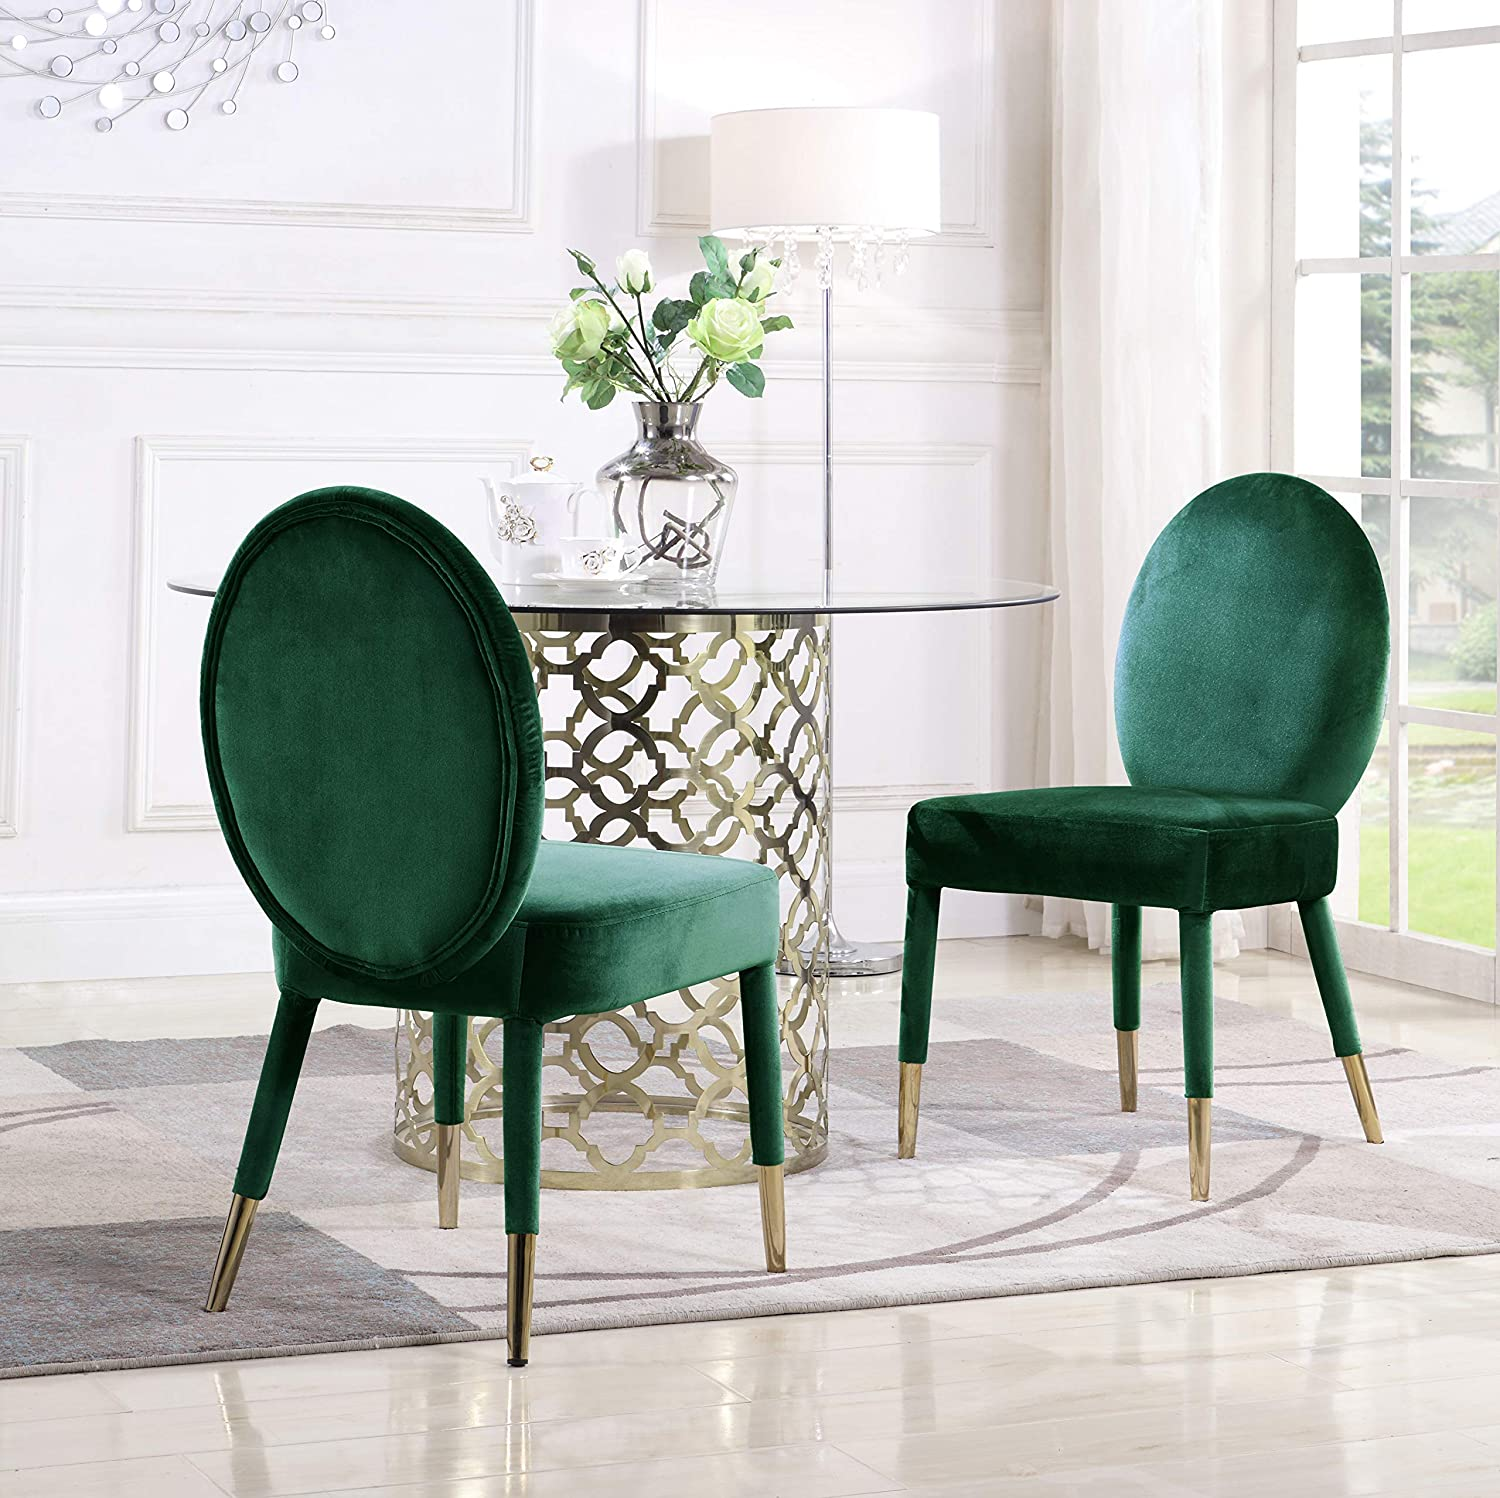 Iconic Home Leverett Dining Chair Upholstered Oval Back Armless Design Velvet Wrapped Wood Gold Tone Metal Tipped Legs (Set of 2) Modern Contemporary, Green